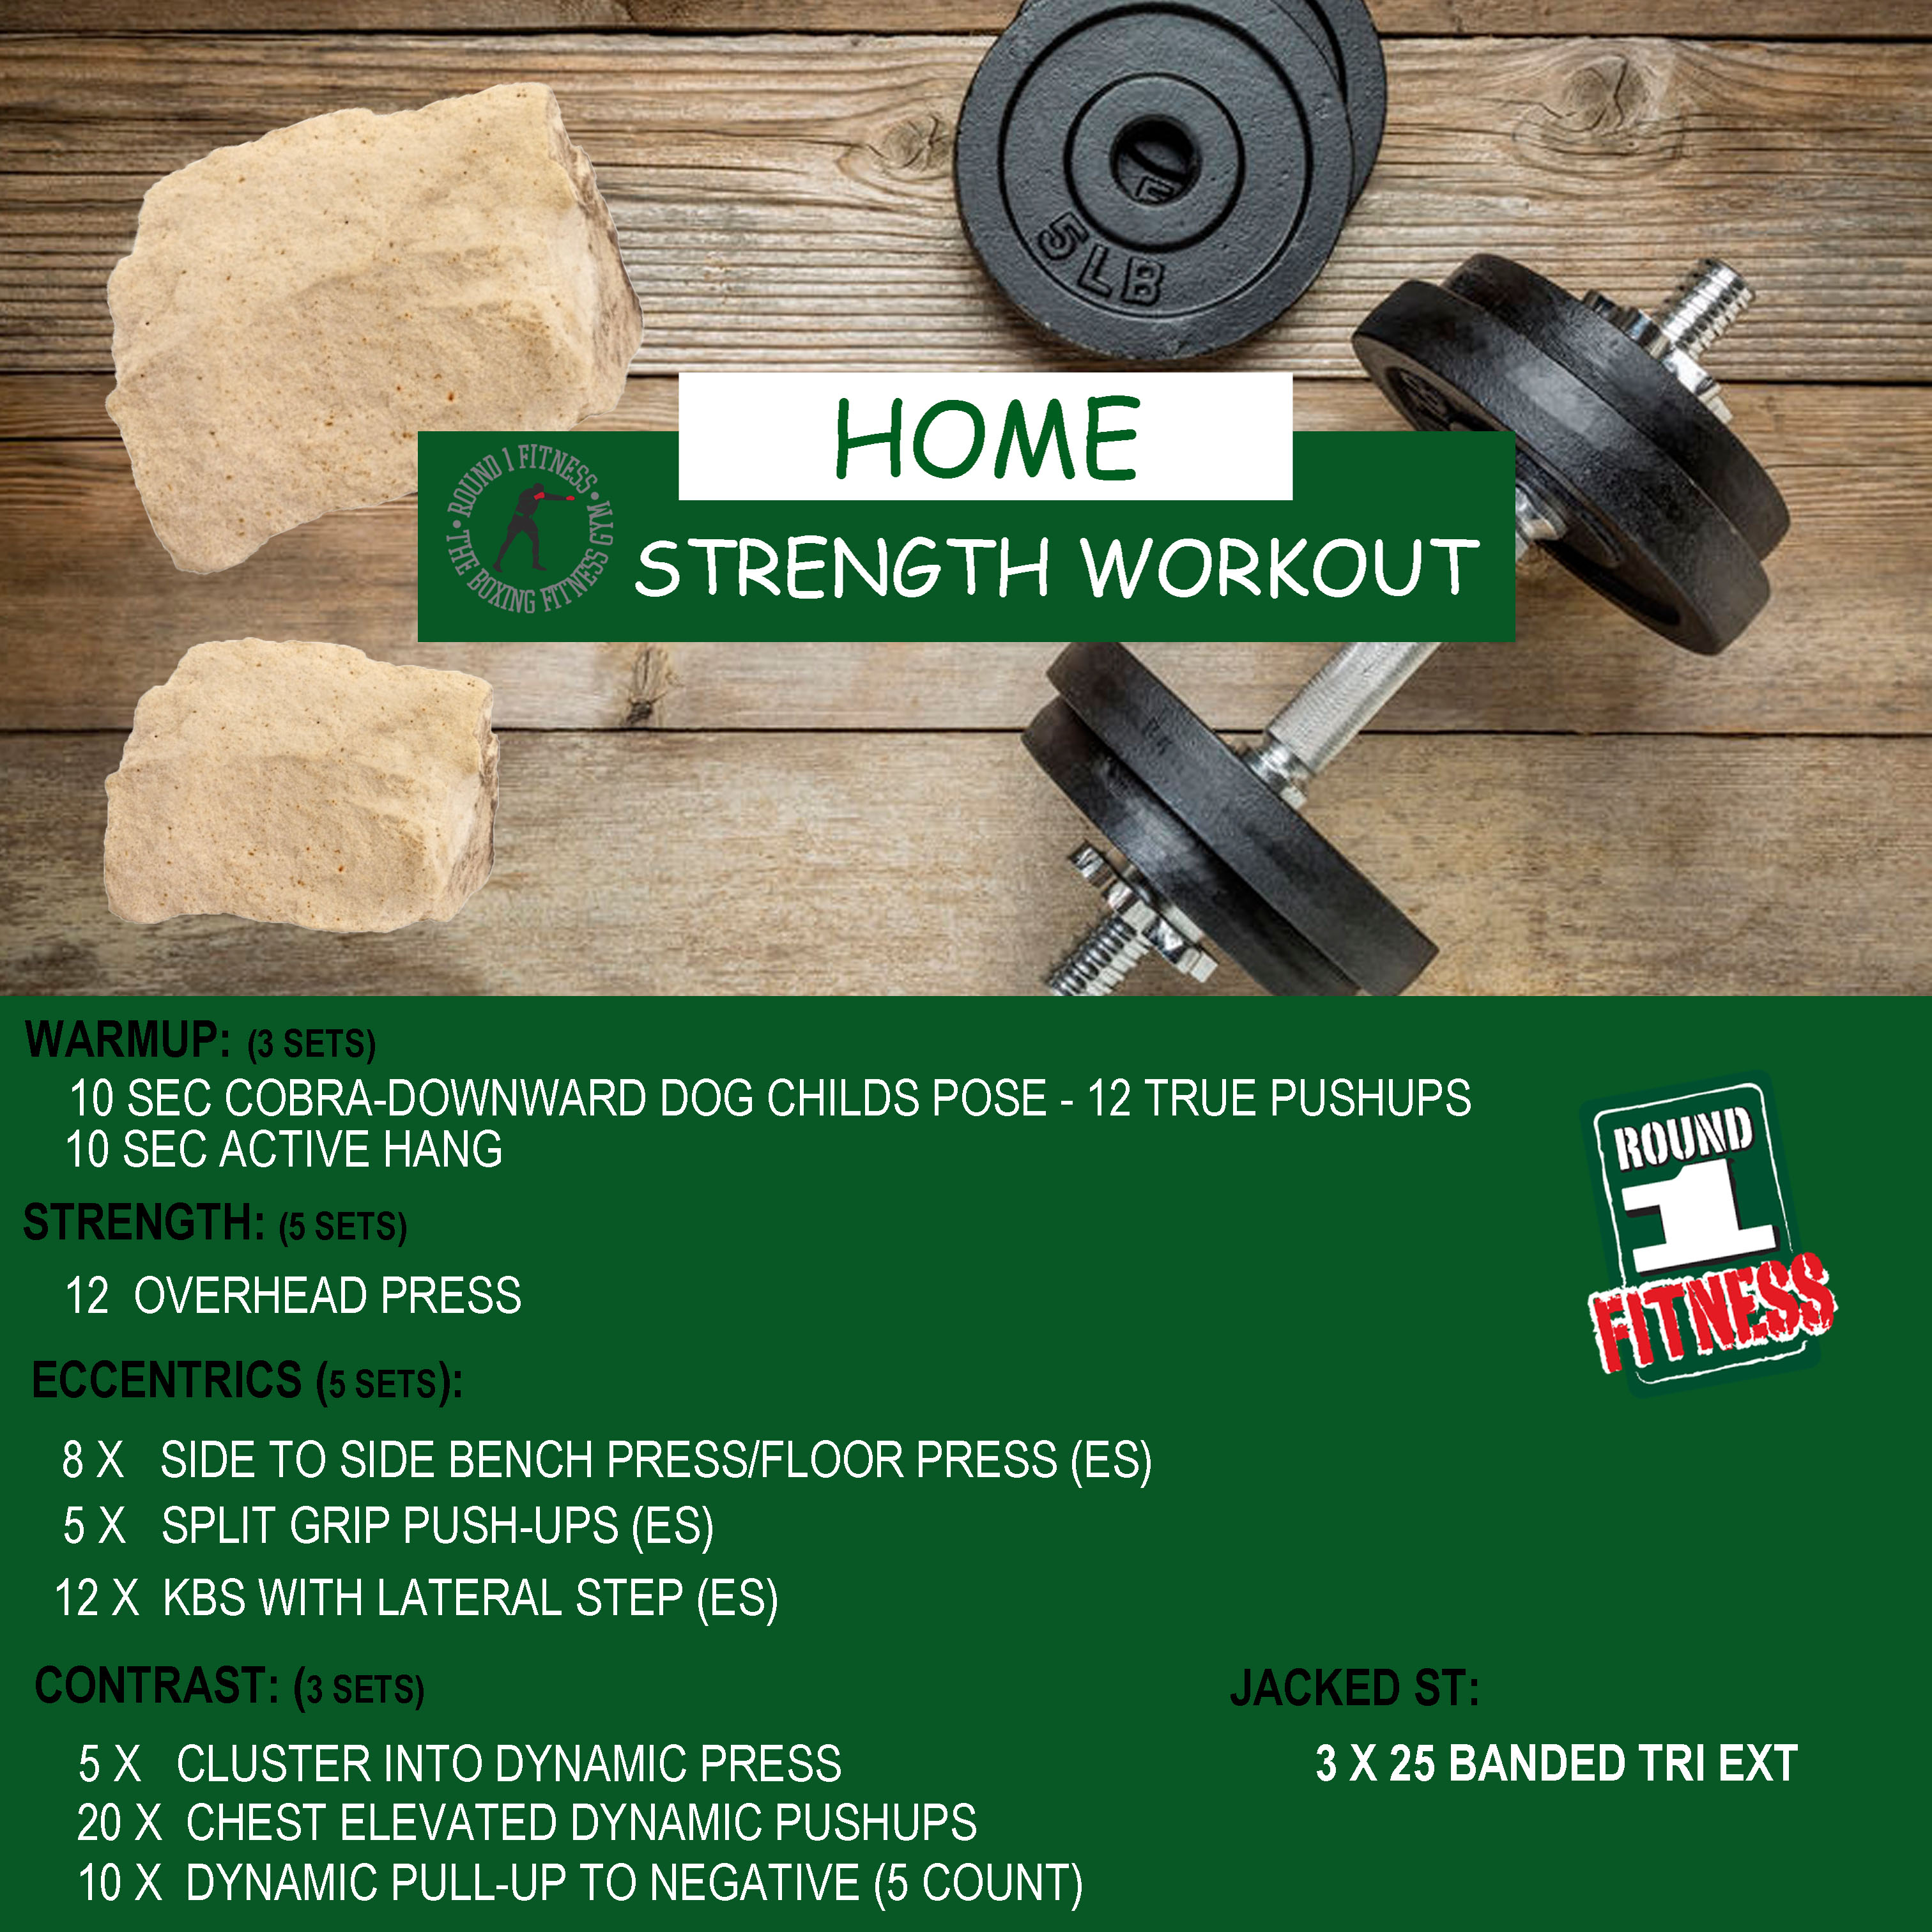 COVID Lockdown#3 – Round 1 @ Home Strength – Workout 4, April 28th 2021